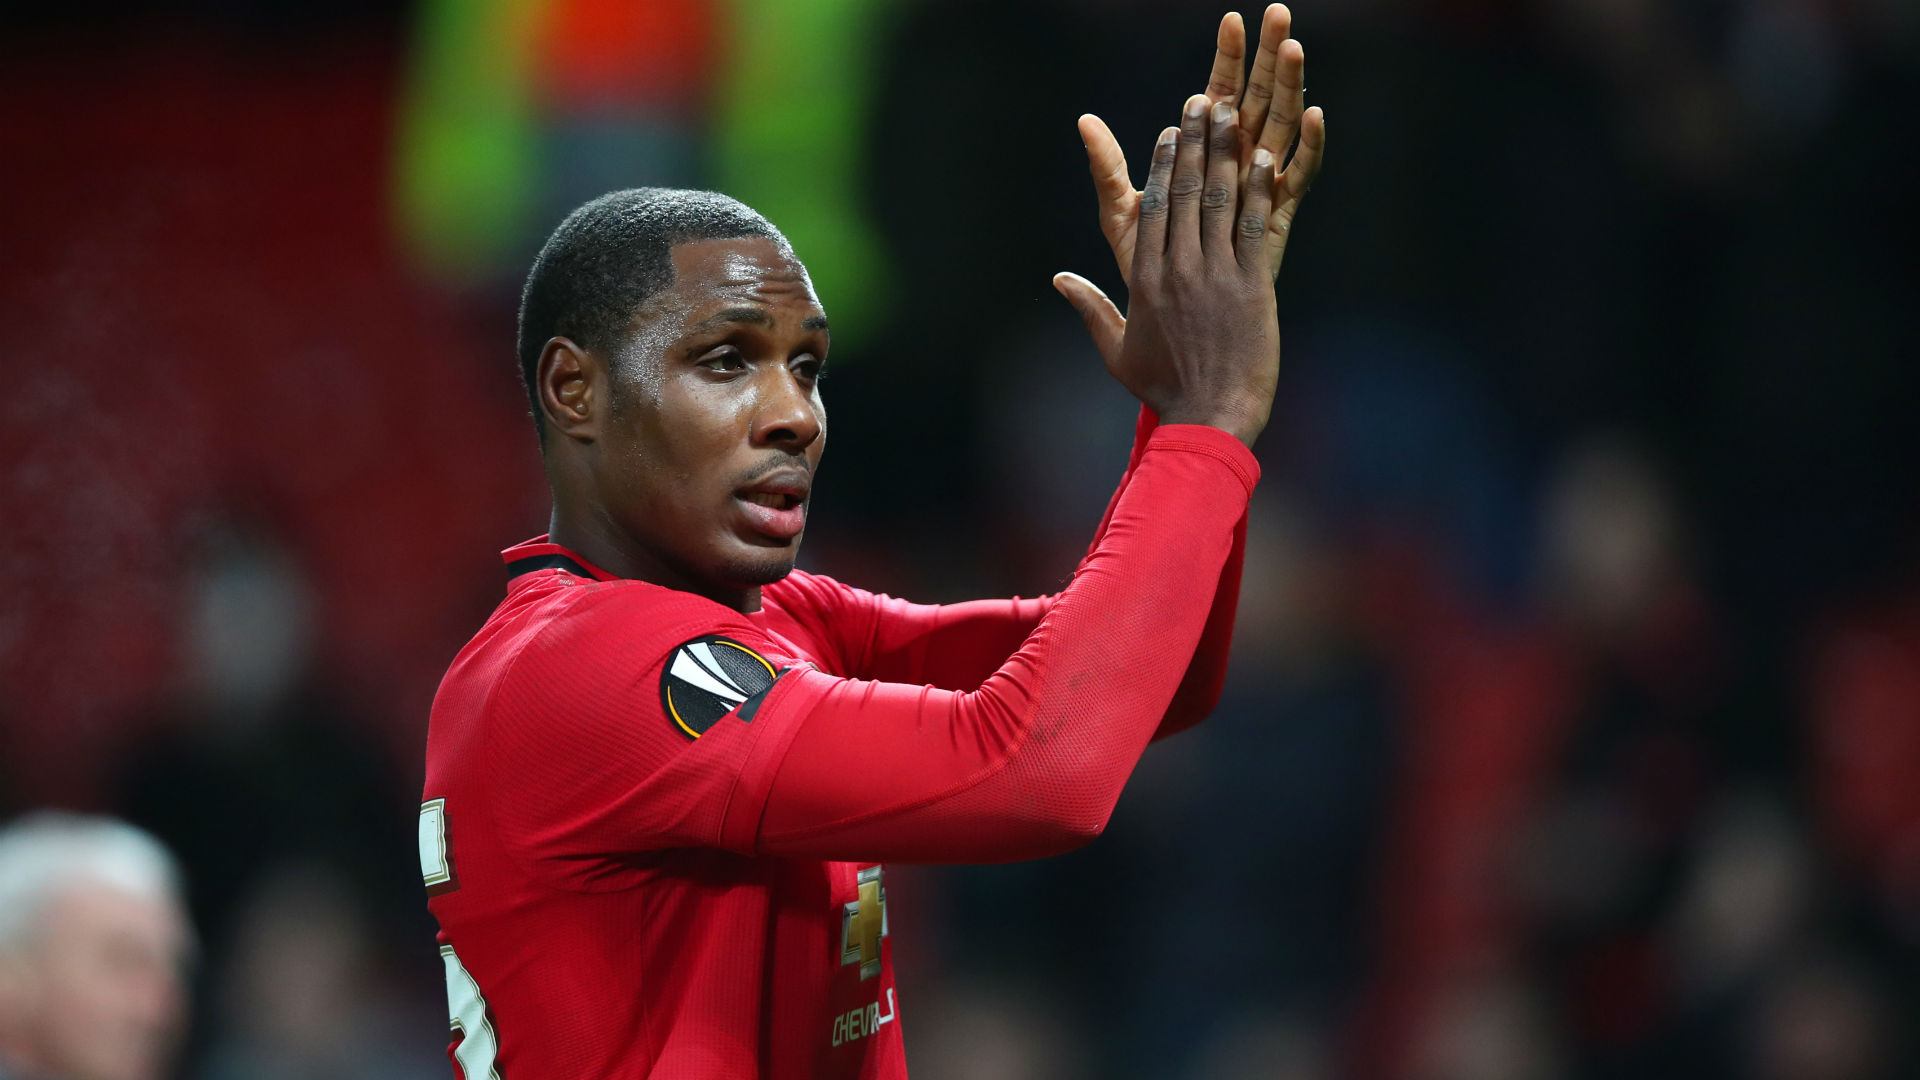 Ighalo gets substitute role as Manchester United face Bournemouth